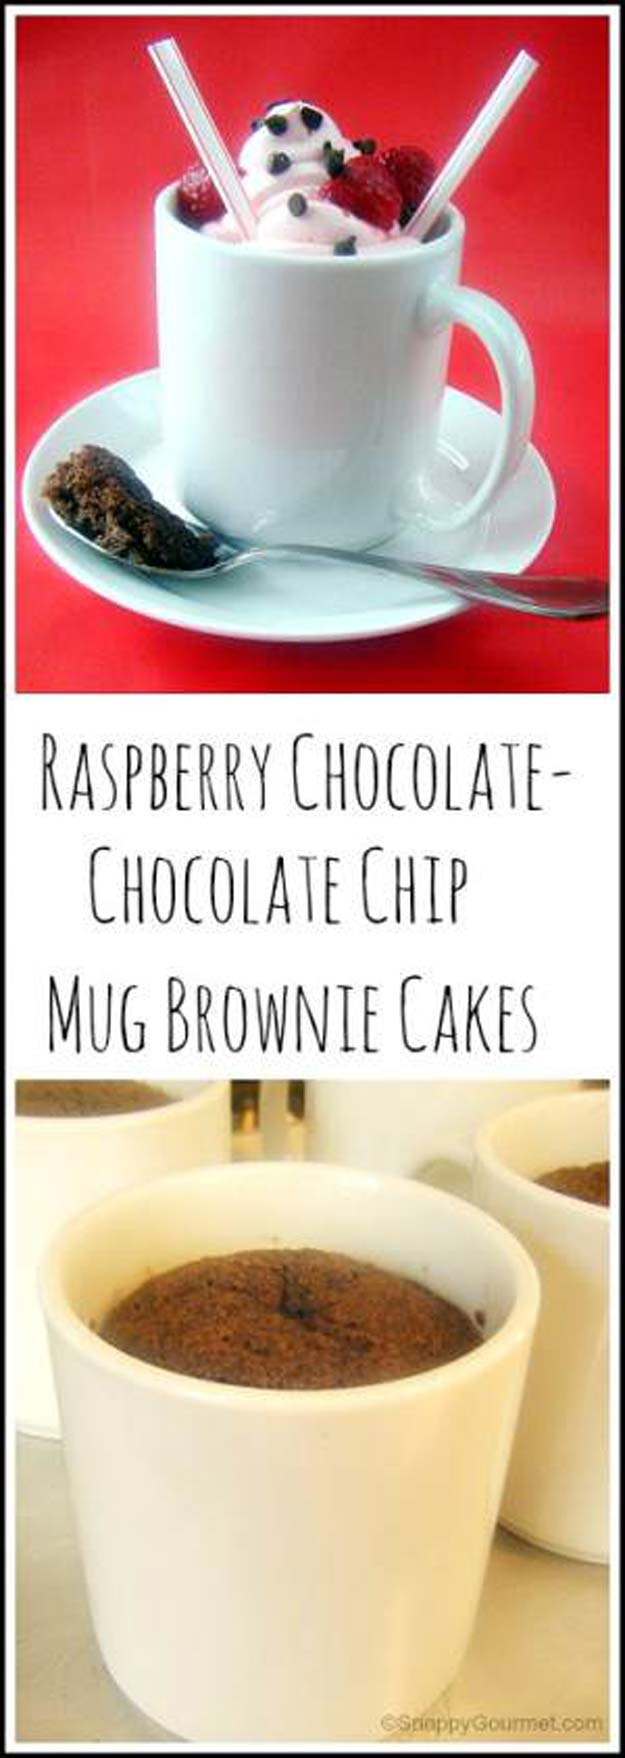 Chocolate Mug Cake Recipes - Raspberry Chocolate-Chocolate Chip Mug Brownie Cakes - Microwave Cake Recipes for Brownies Easy